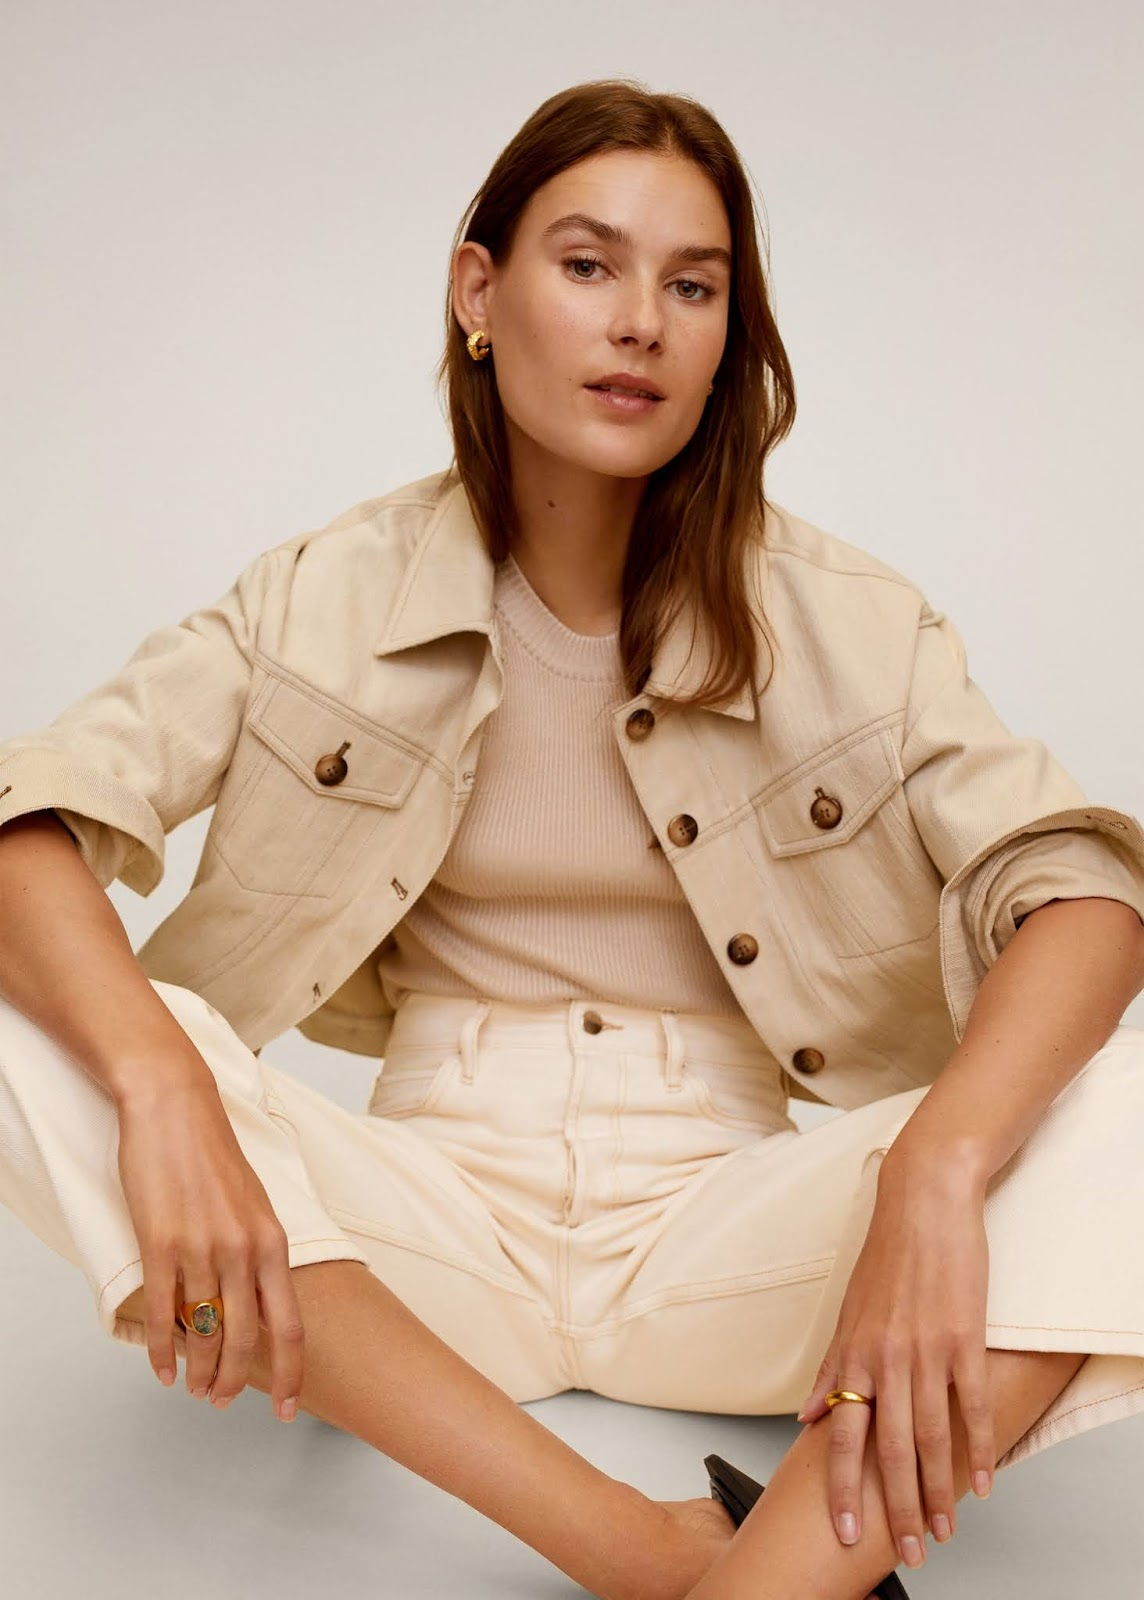 Mango Sale — Neutral Denim Jacket, Ribbed Top and High-Waisted Beige Jeans